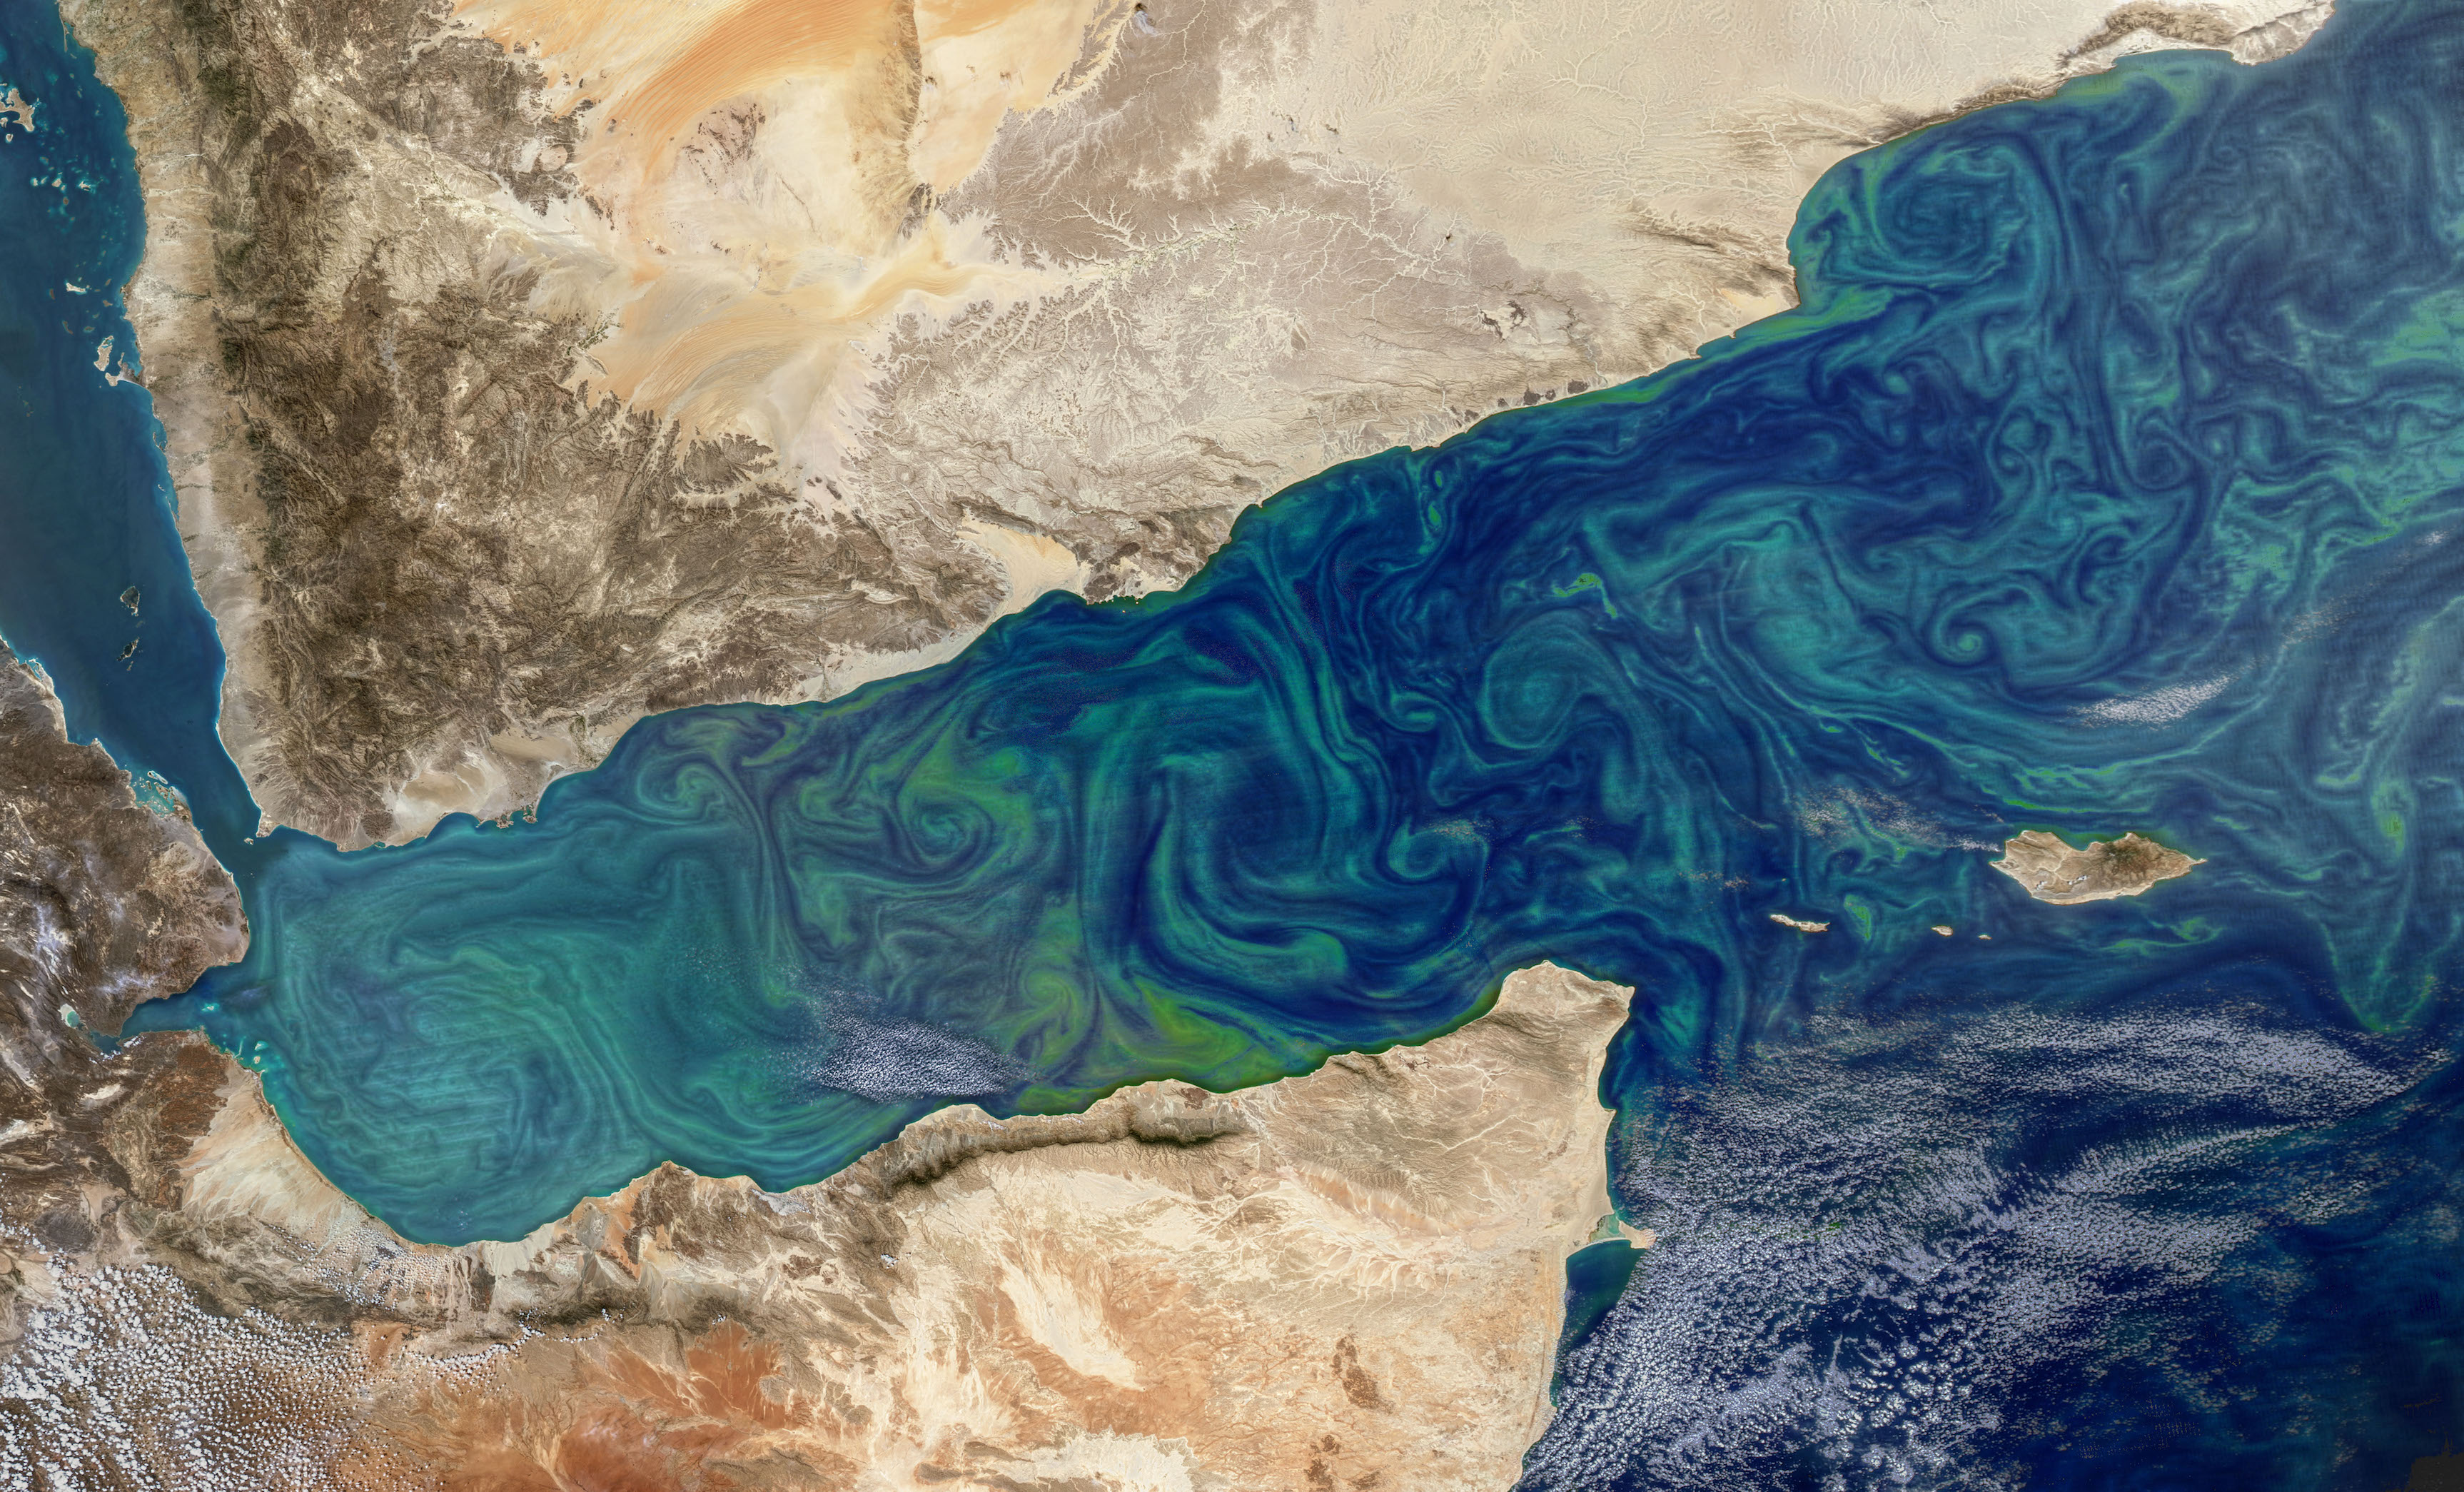 Today's Image of the Day comes from the NASA Earth Observatory and features a look at a phytoplankton bloom in the Gulf of Aden in the Arabian Sea.